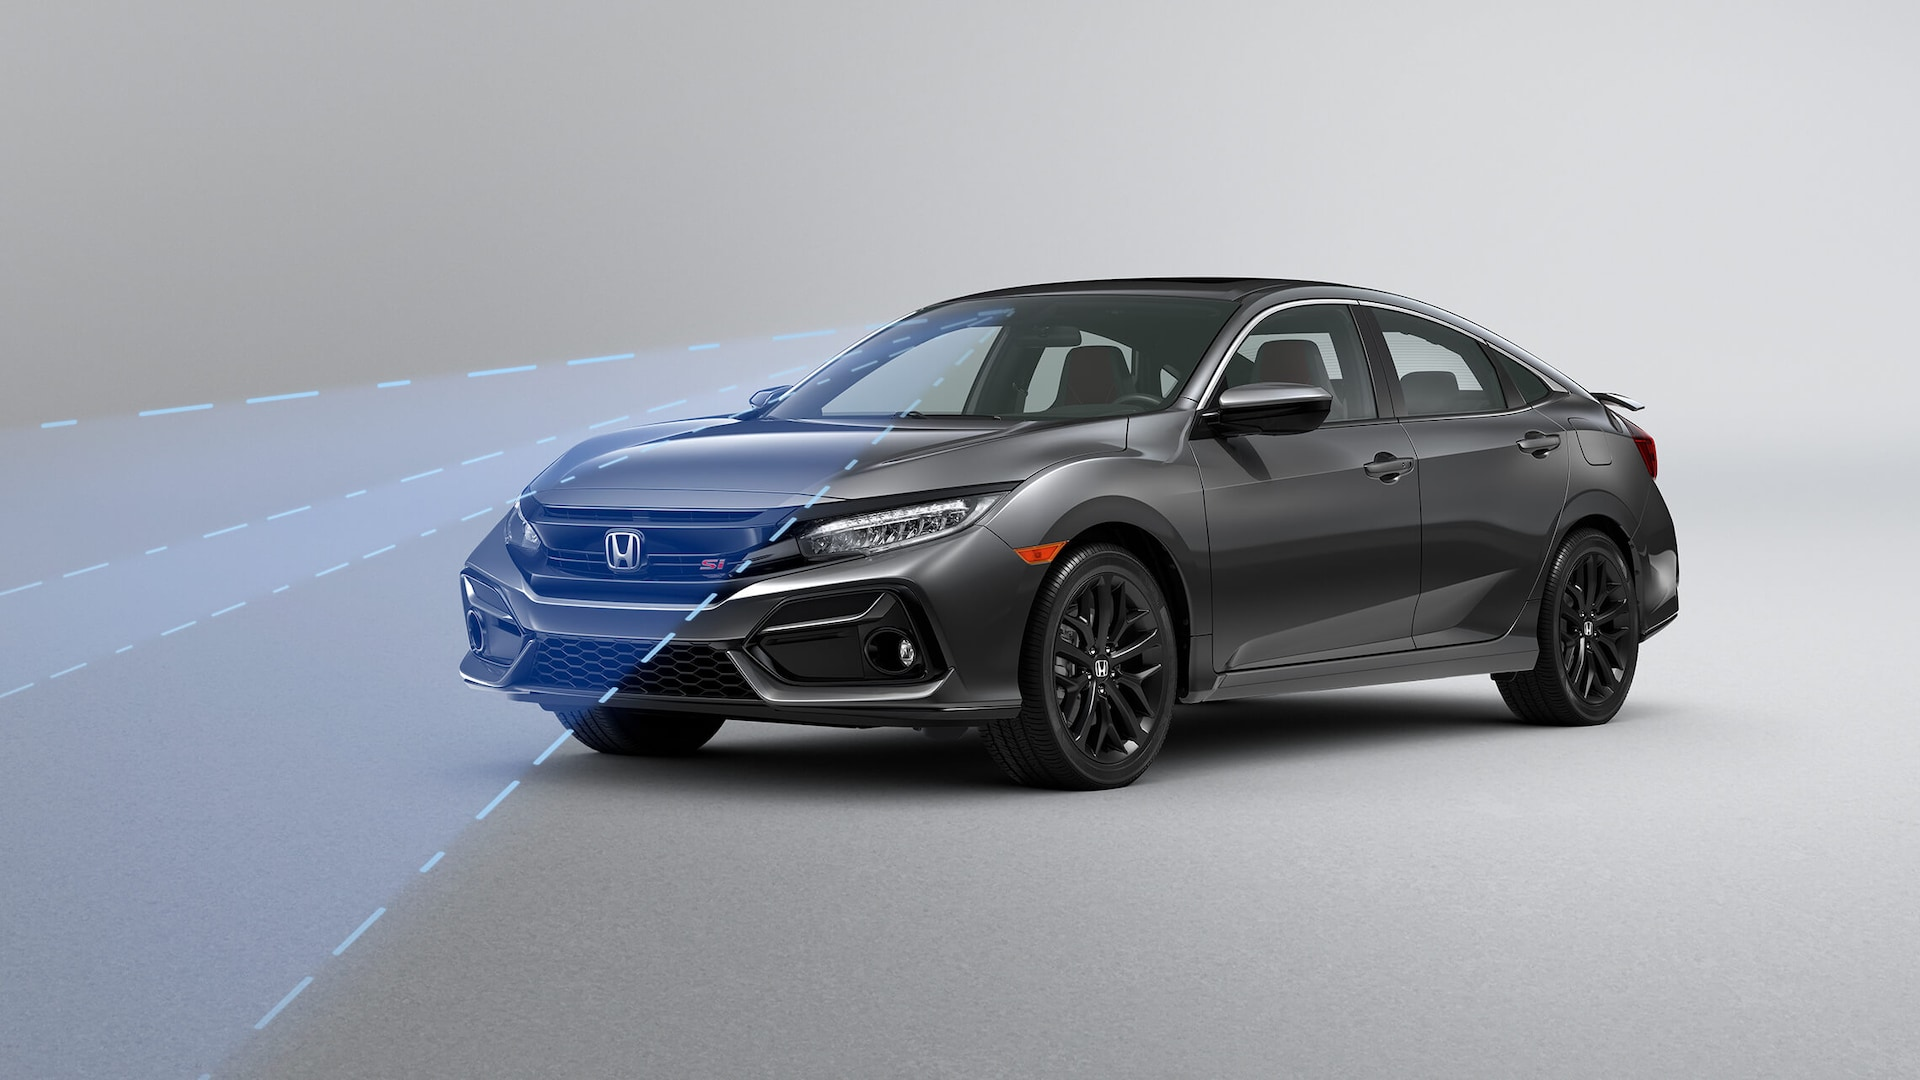 Front 3/4 driver's side view of 2020 Honda Civic Si Sedan demonstrating Road Departure Mitigation System (RDM).